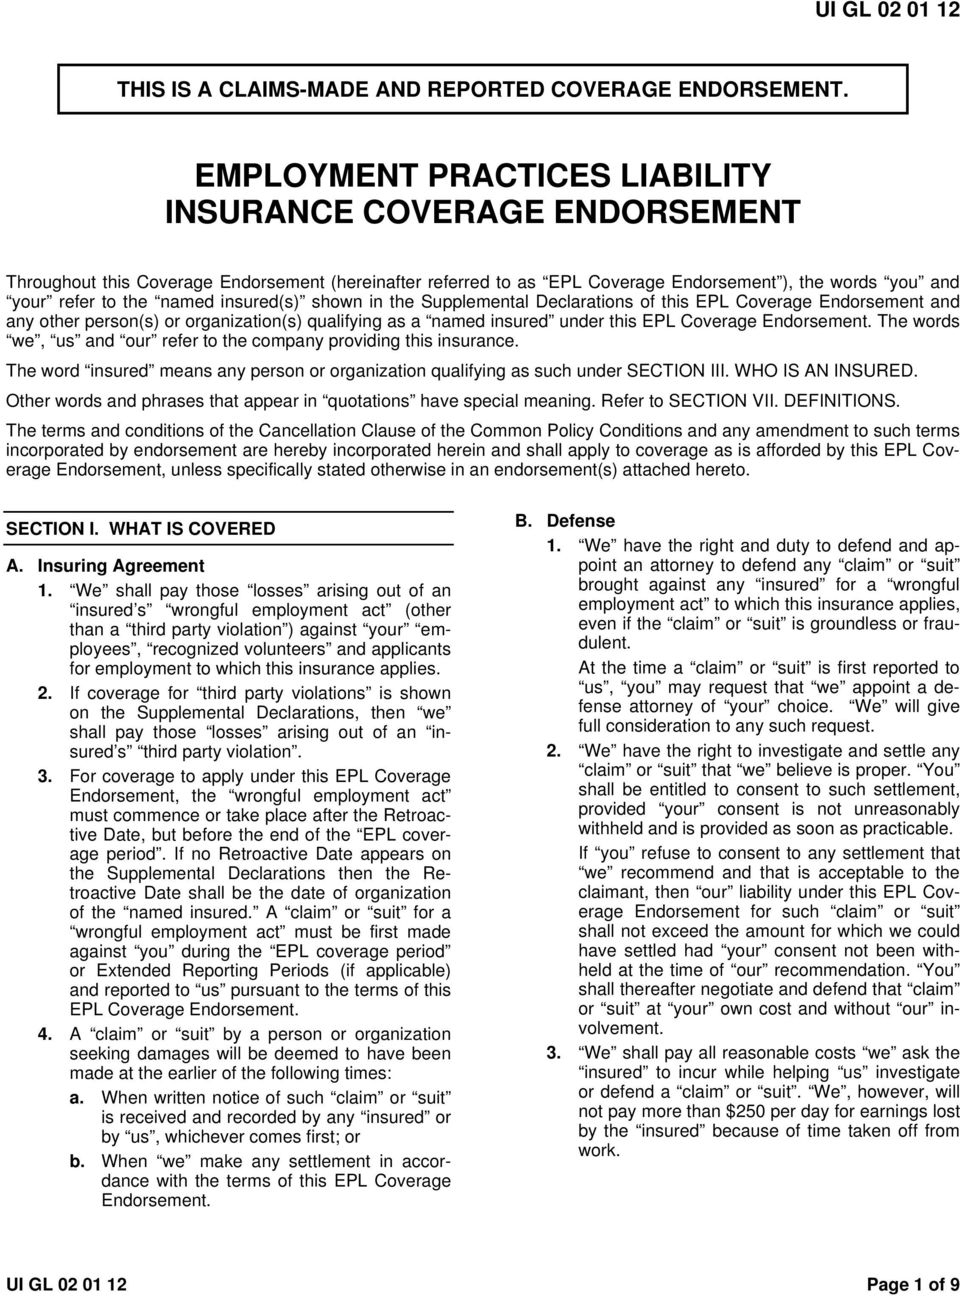 insured(s) shown in the Supplemental Declarations of this EPL Coverage Endorsement and any other person(s) or organization(s) qualifying as a named insured under this EPL Coverage Endorsement.